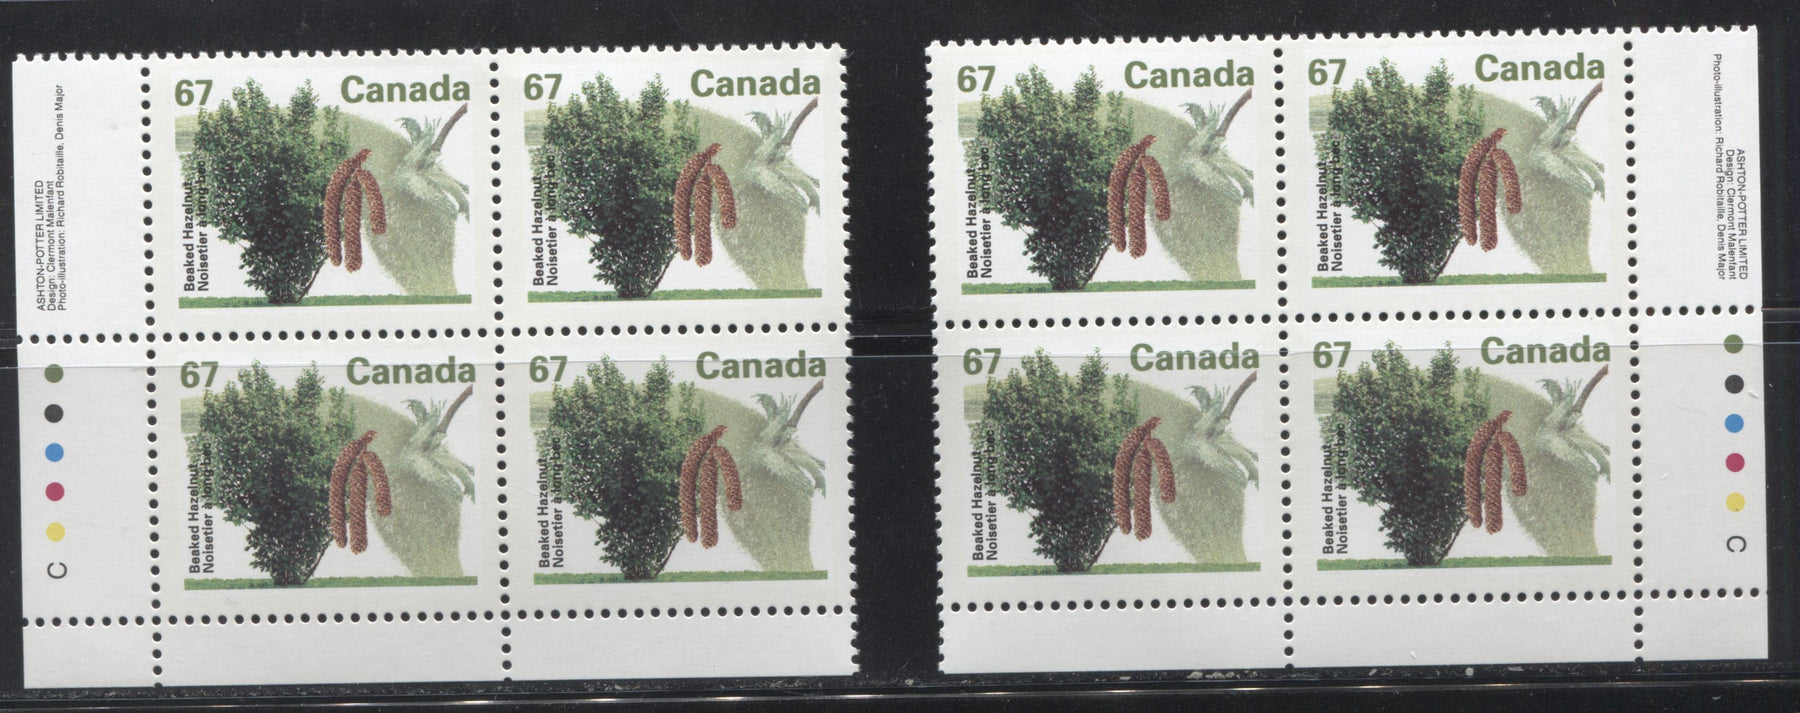 Canada #1368 67c Beaked Hazelnut, 1991-1998 Fruit & Flag Definitive Issue, VFNH LL and LR Inscription Blocks, Perf. 13.1 on Dead/NF Coated Papers Paper